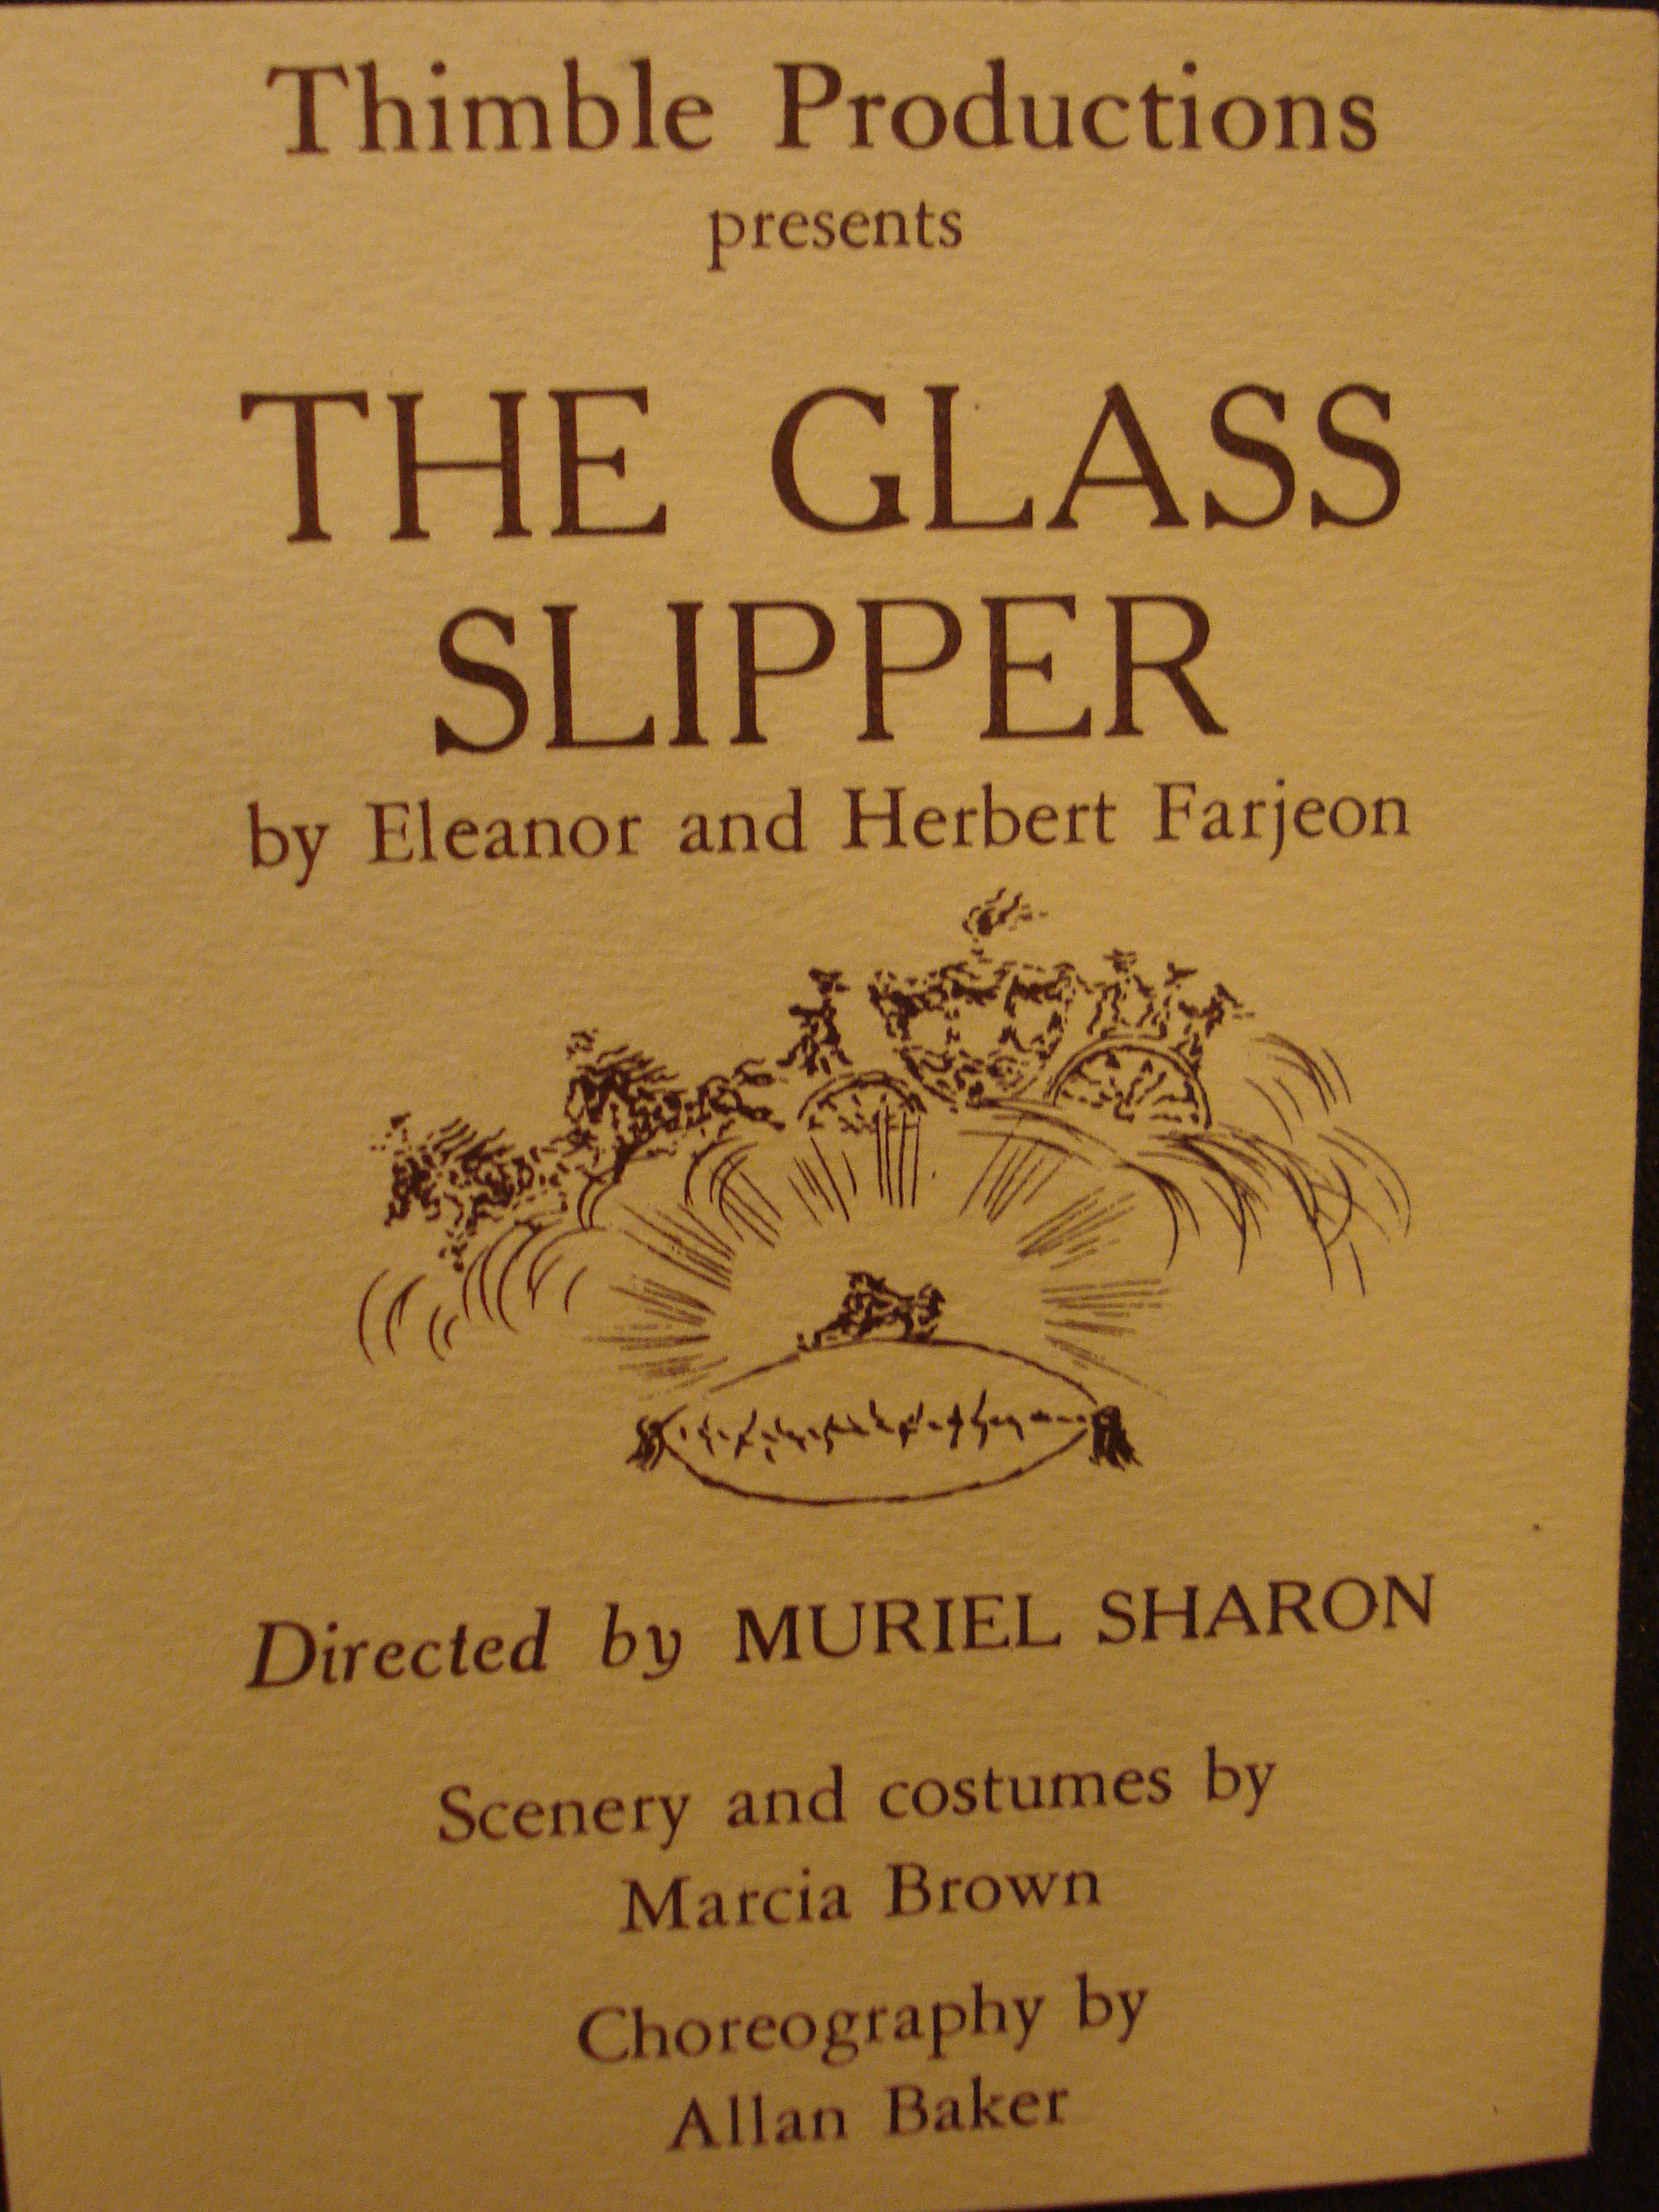 The Glass Slipper, Booklet, 1959-60